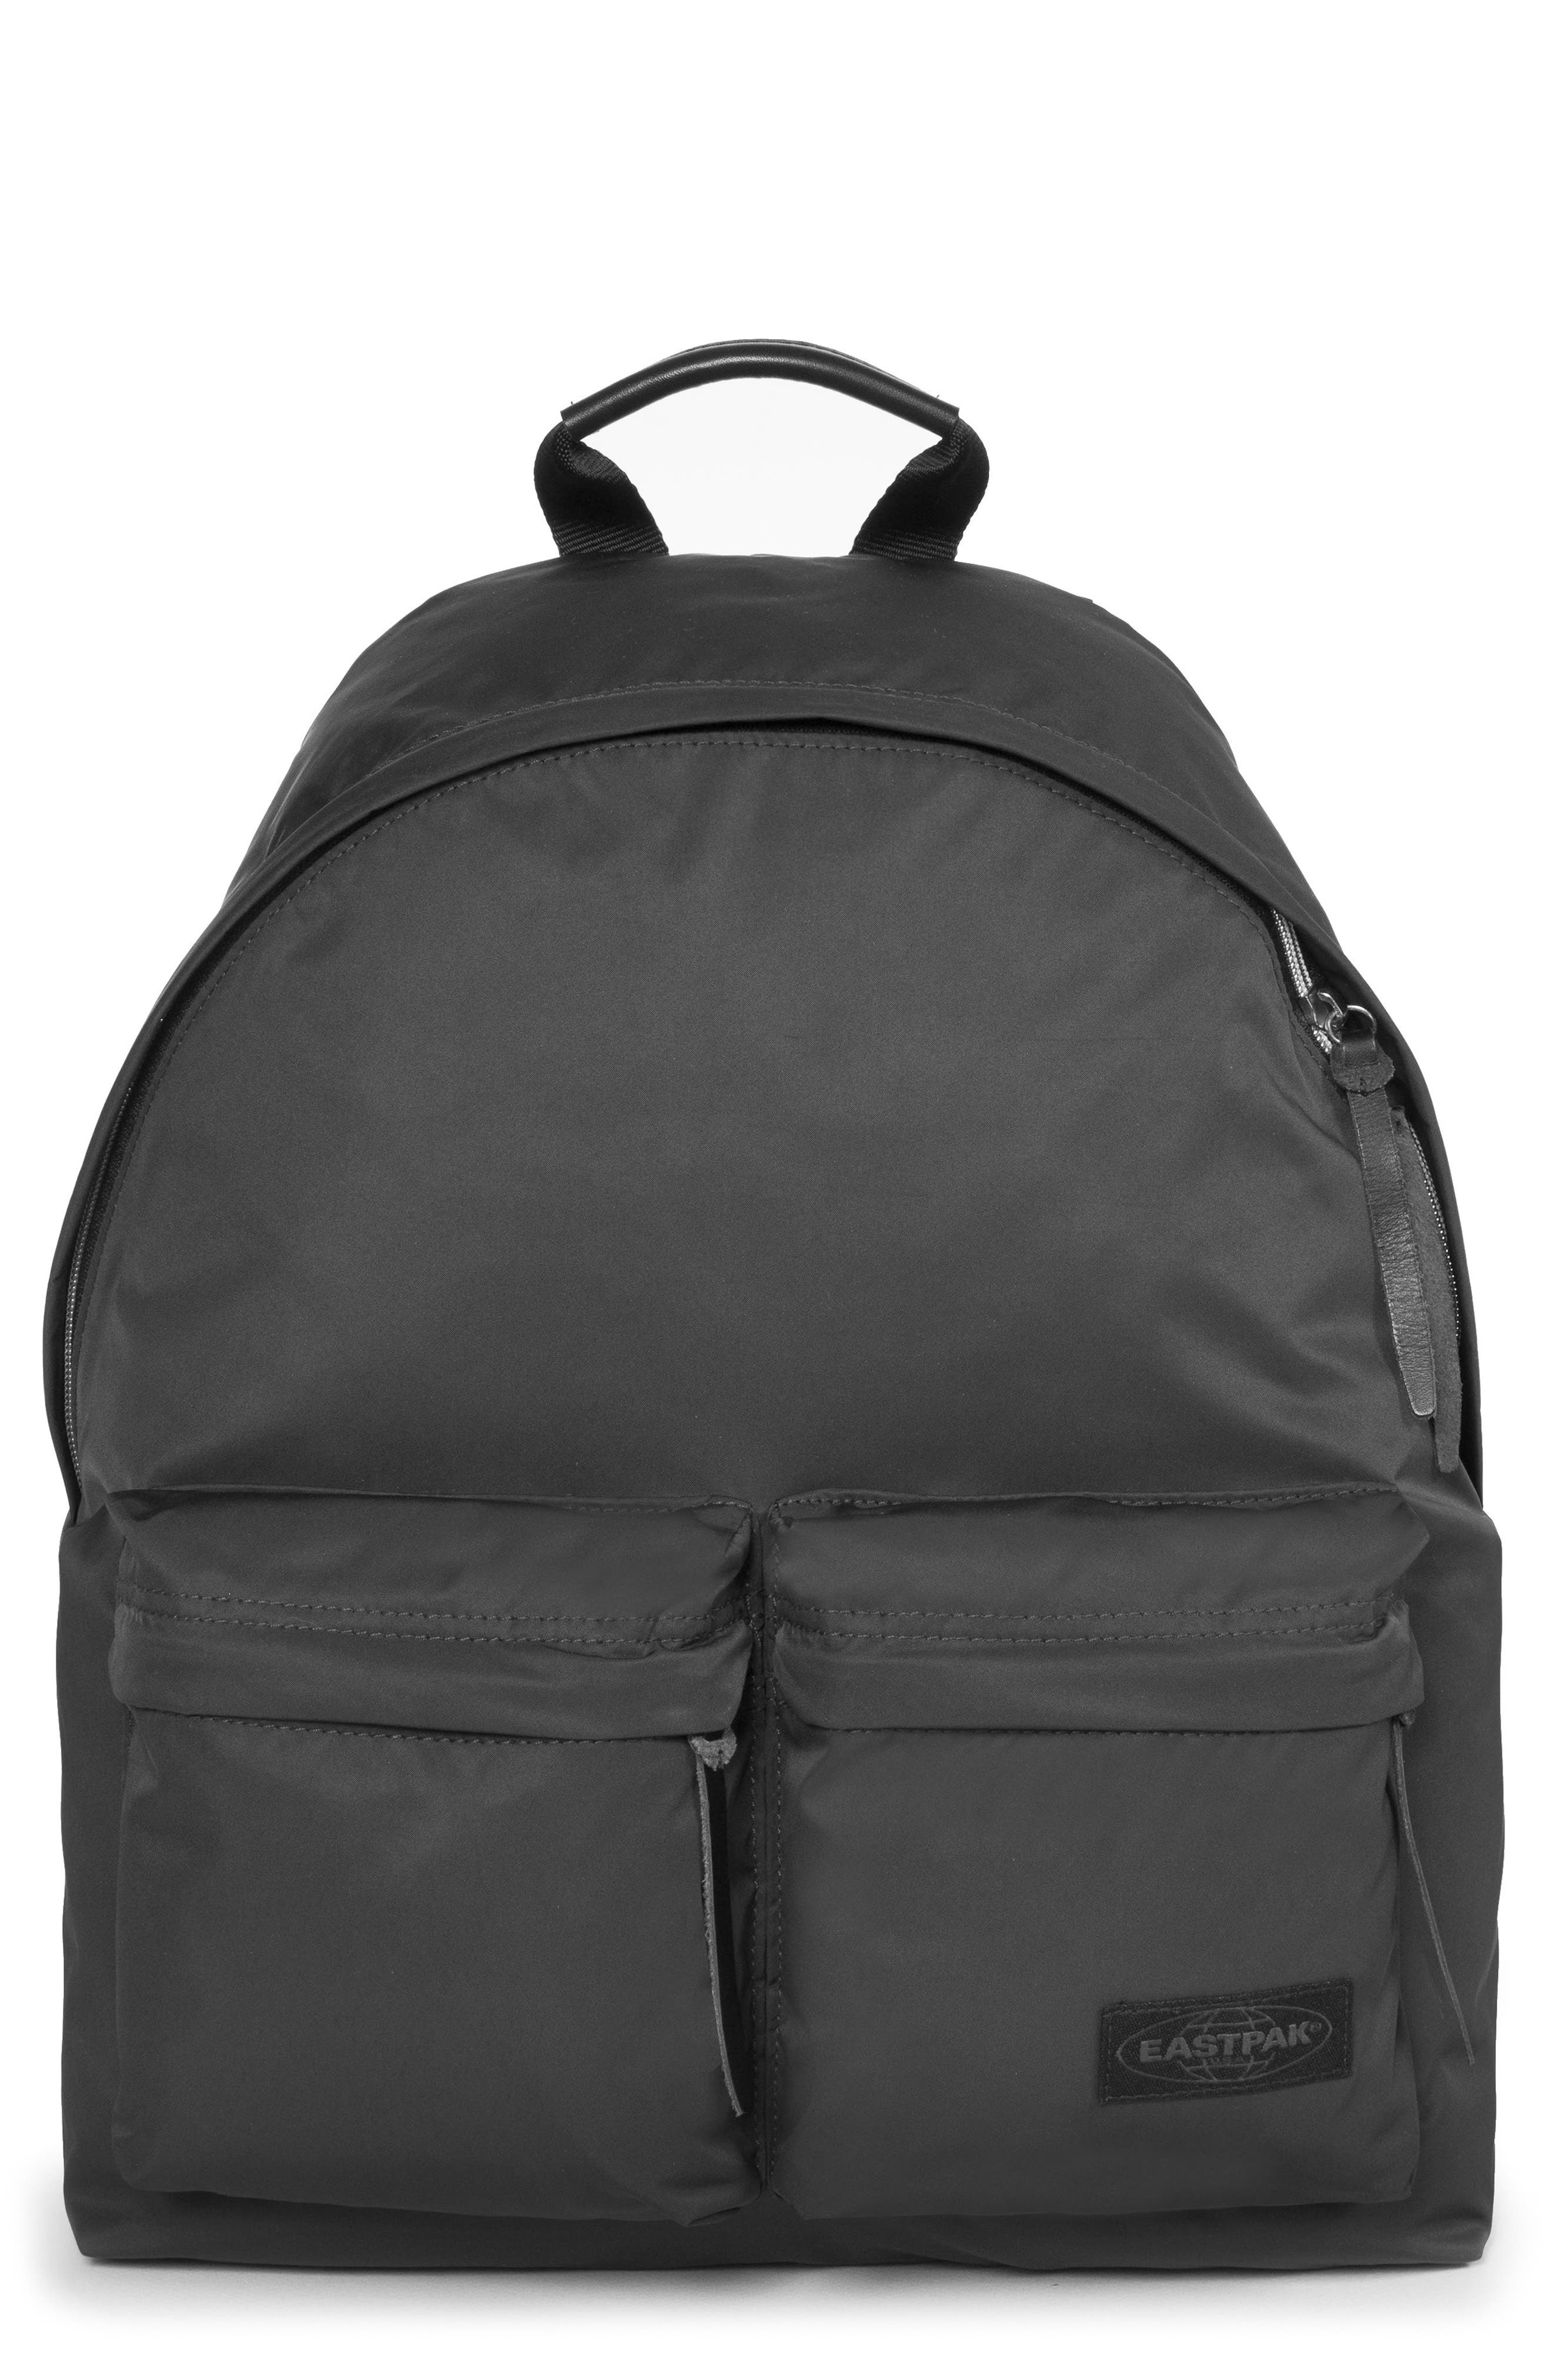 EASTPAK,                             Padded Doubl'r<sup>®</sup> Nylon Backpack,                             Main thumbnail 1, color,                             001